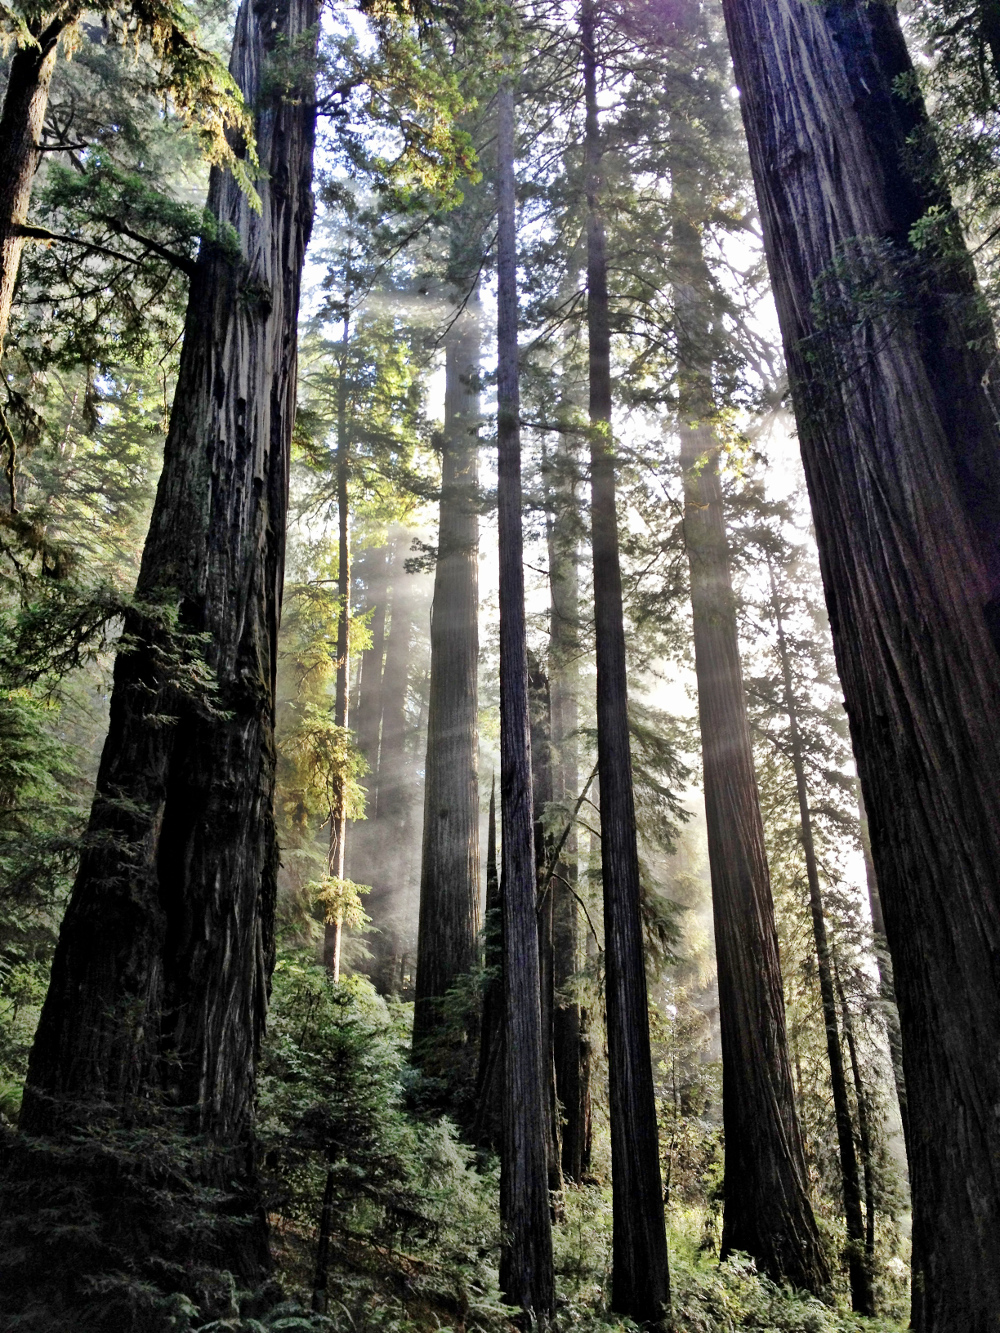 Exploring the Redwood Forest Double-Barrelled Travel